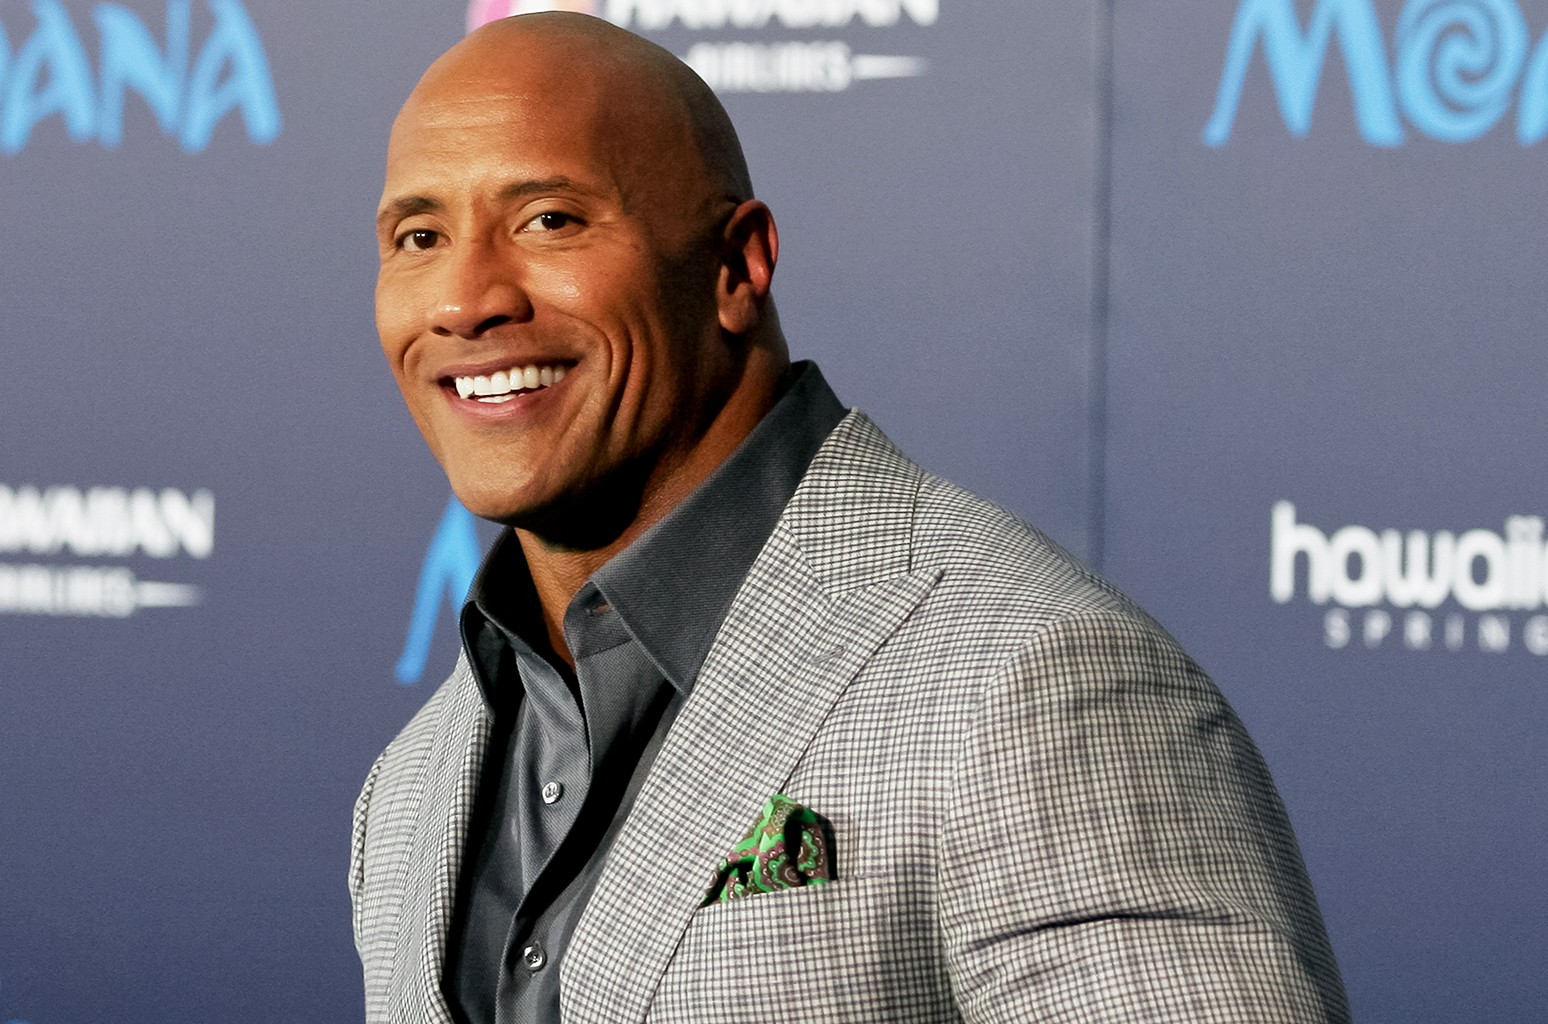 Dwayne Johnson attends the premiere of Moana